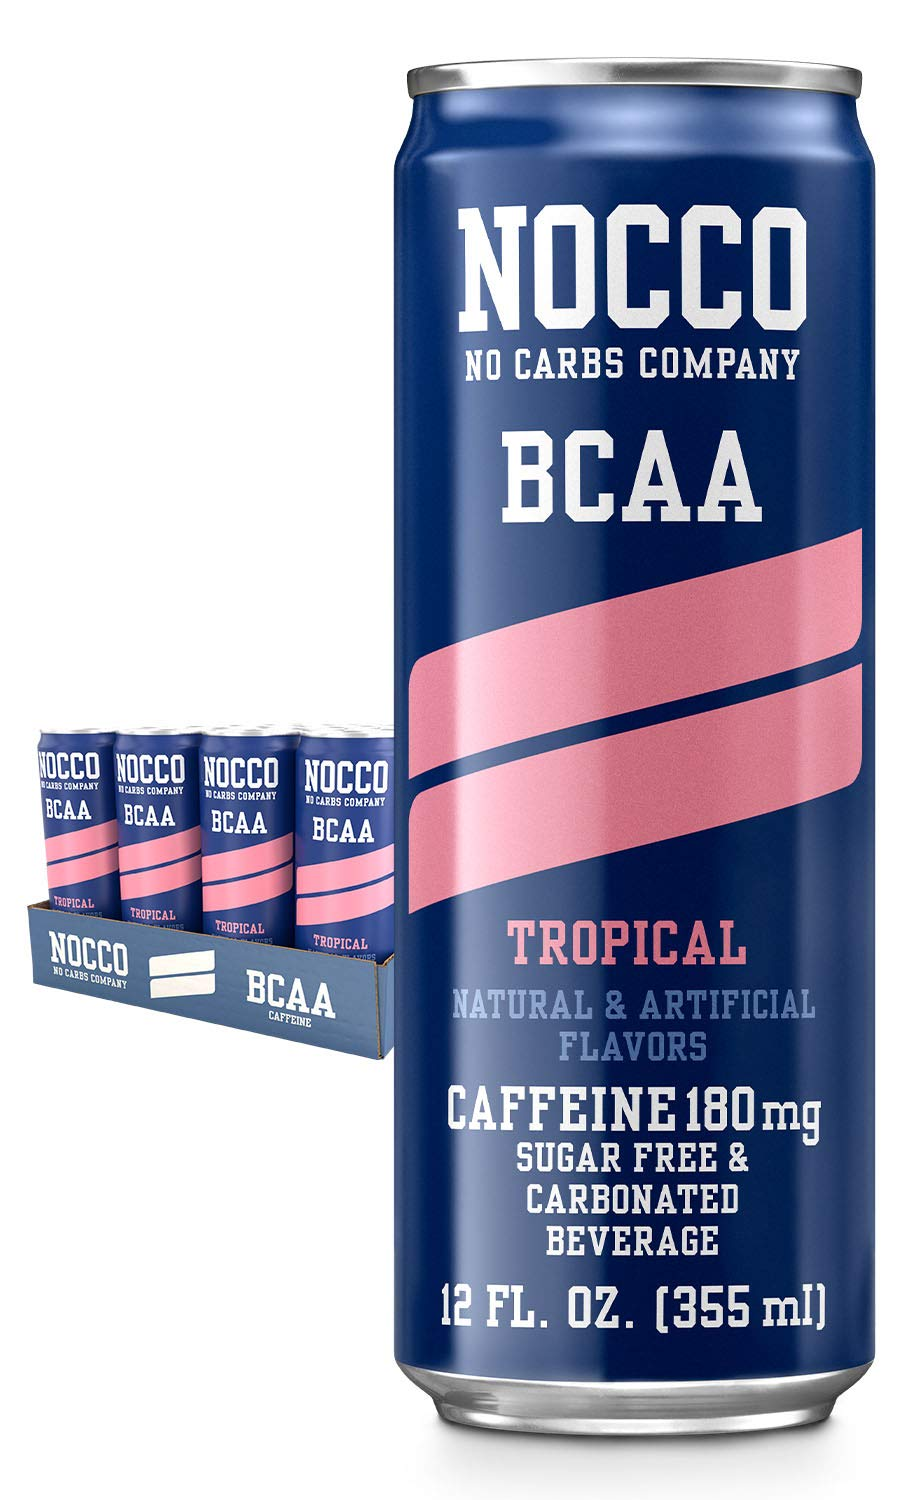 NOCCO BCAA Tropical 24 x 12 Fl Oz Carbonated, ZERO Sugar, Low Calorie, Ready to drink BCAA energy drink from fitness oriented No Carbs Company, Vitamin and Caffeine Flavored Carbonated Drinks